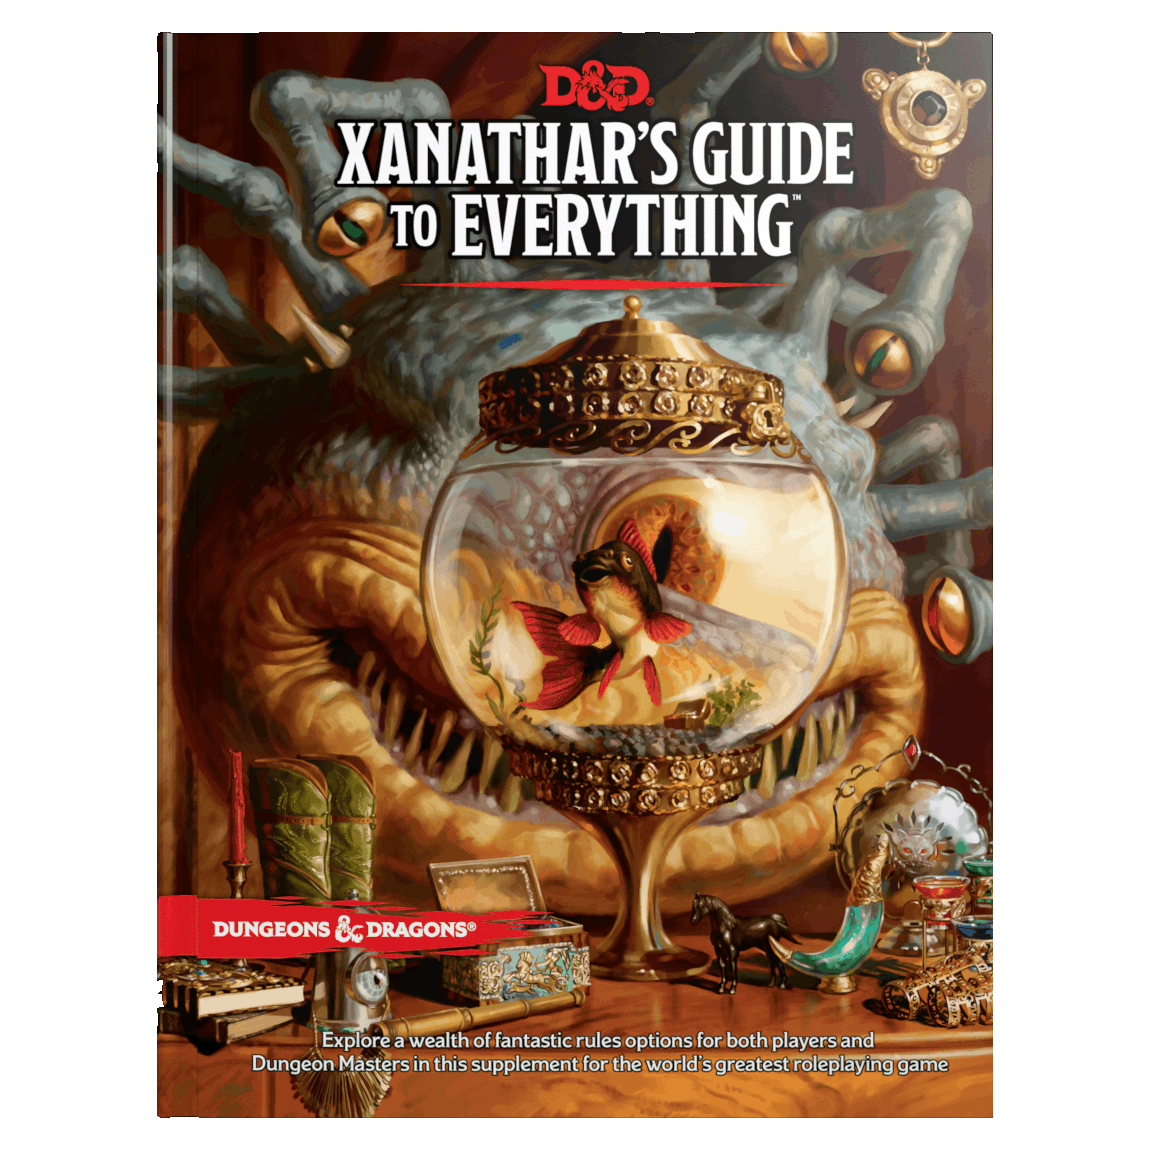 Xanathars-Guide-to-Everything